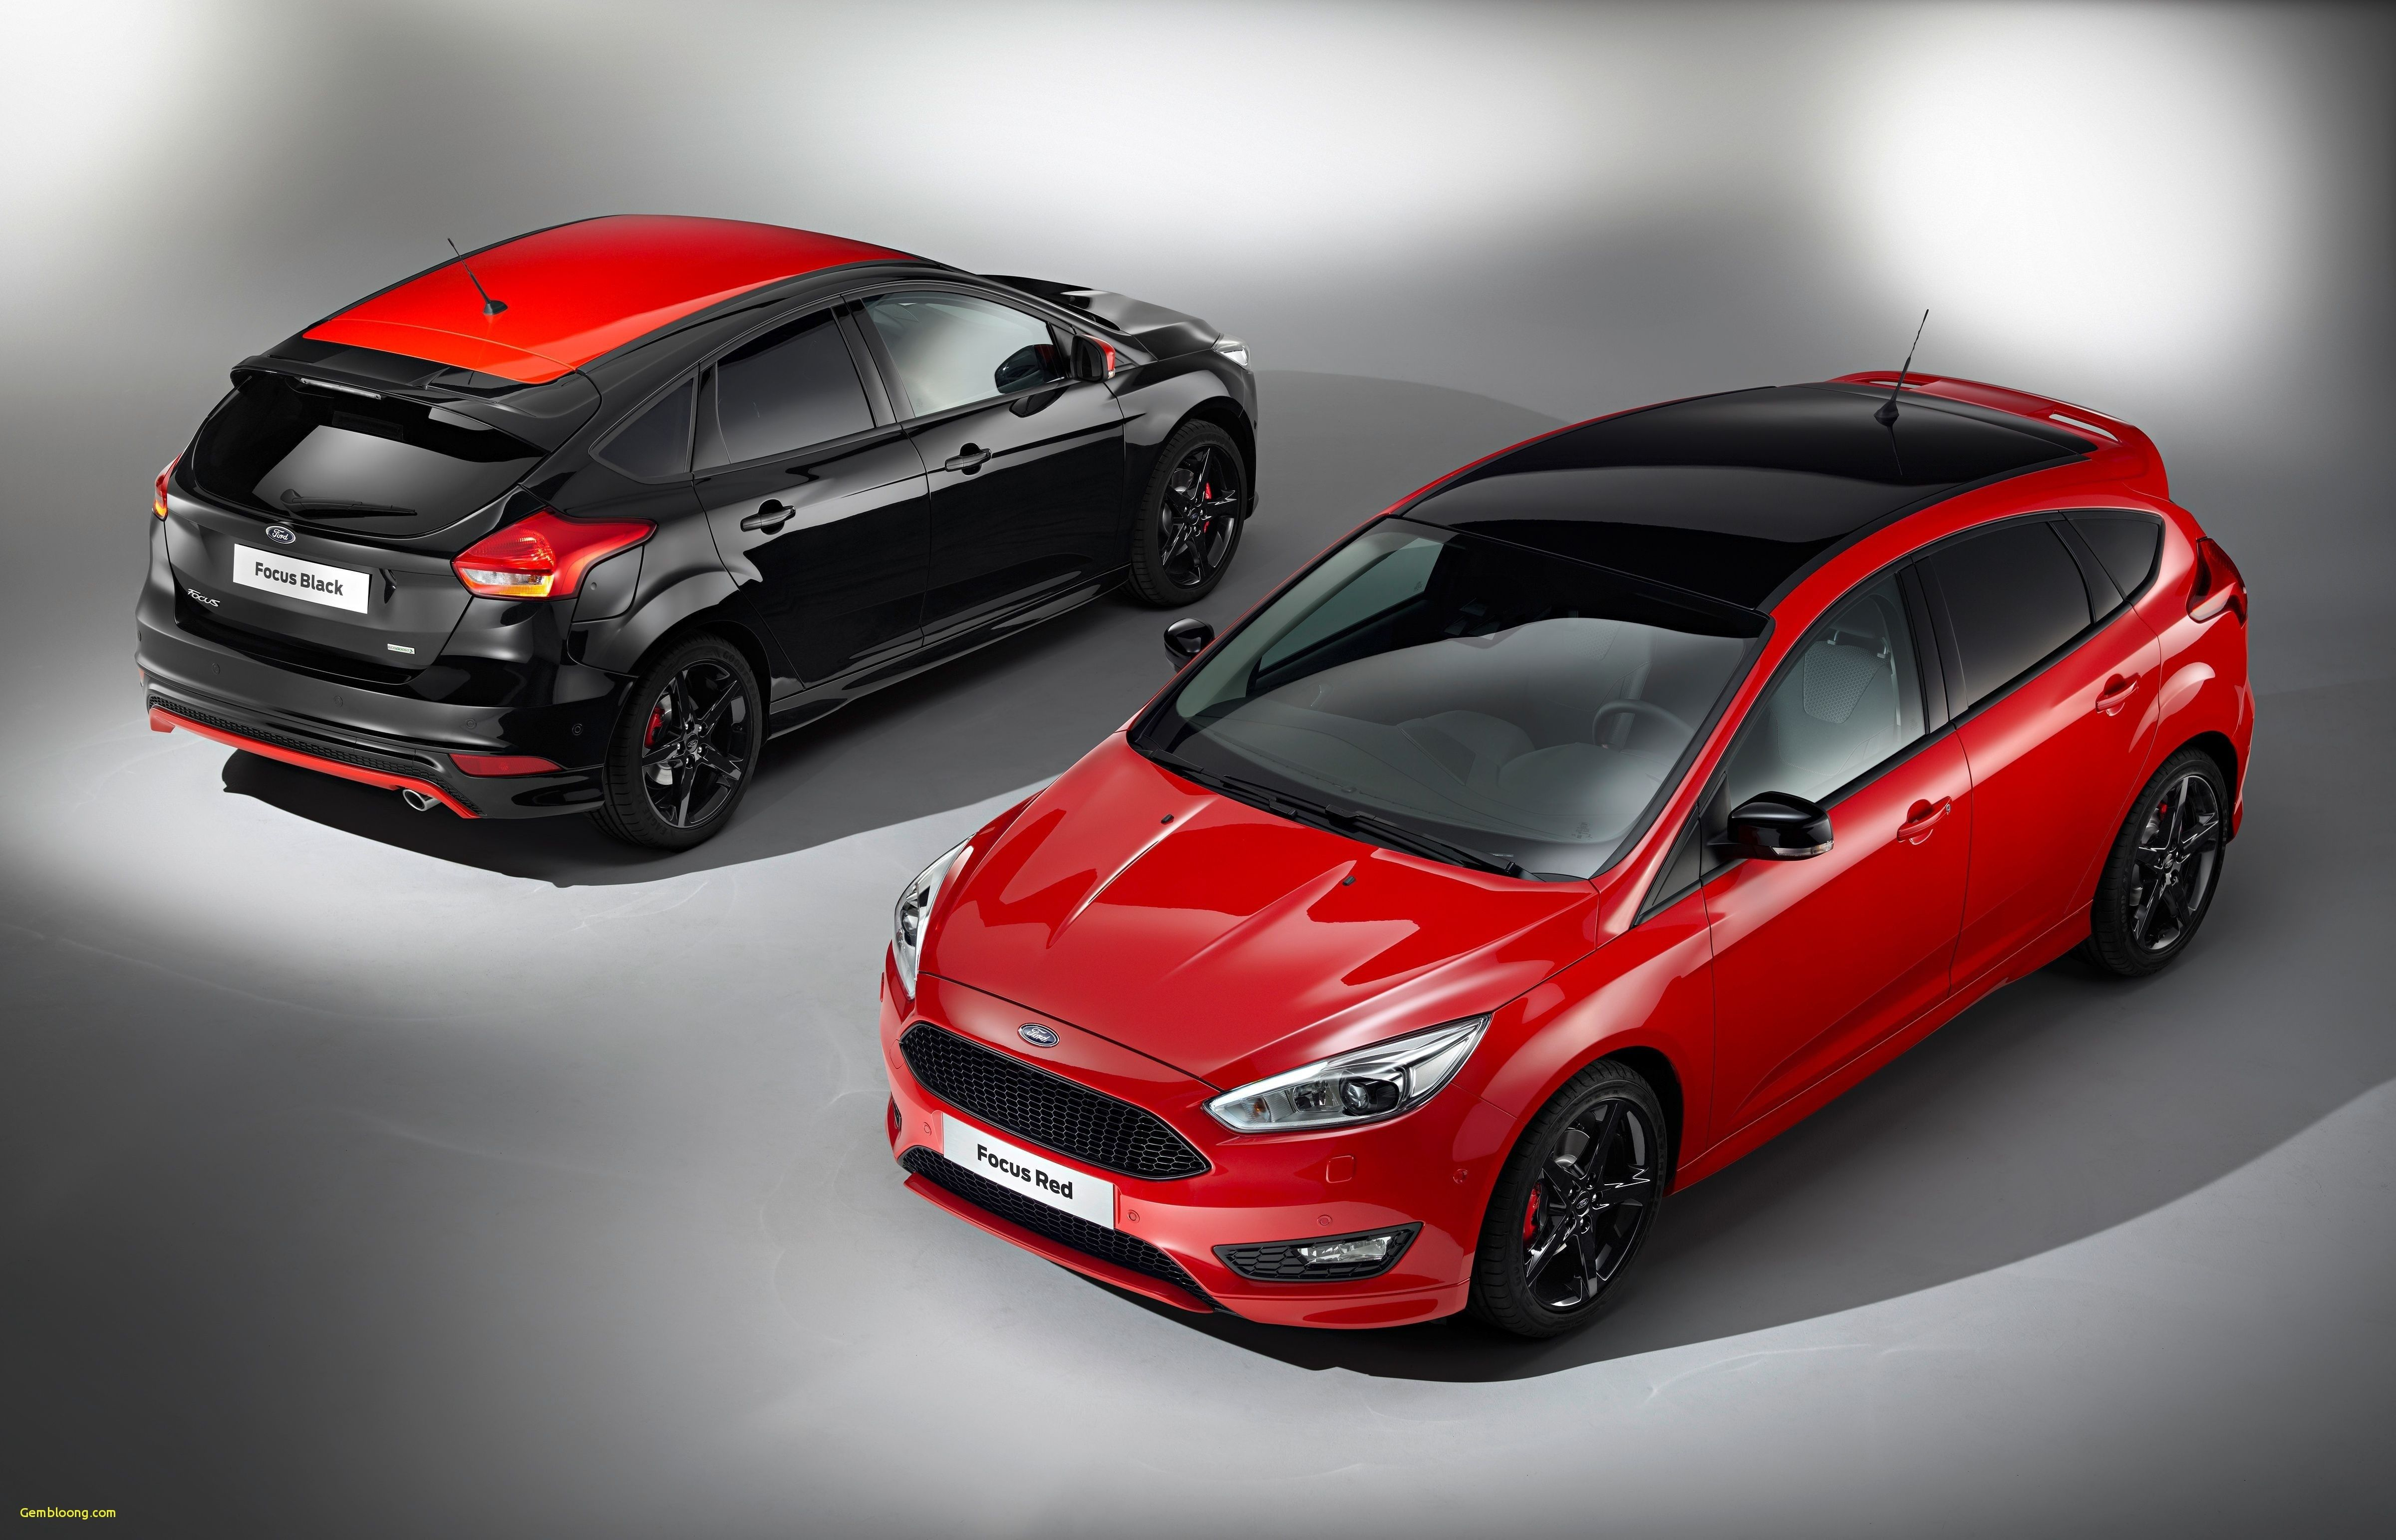 How Much For 2020 Ford Fiesta St Rs Ford Focus Zetec Ford Focus